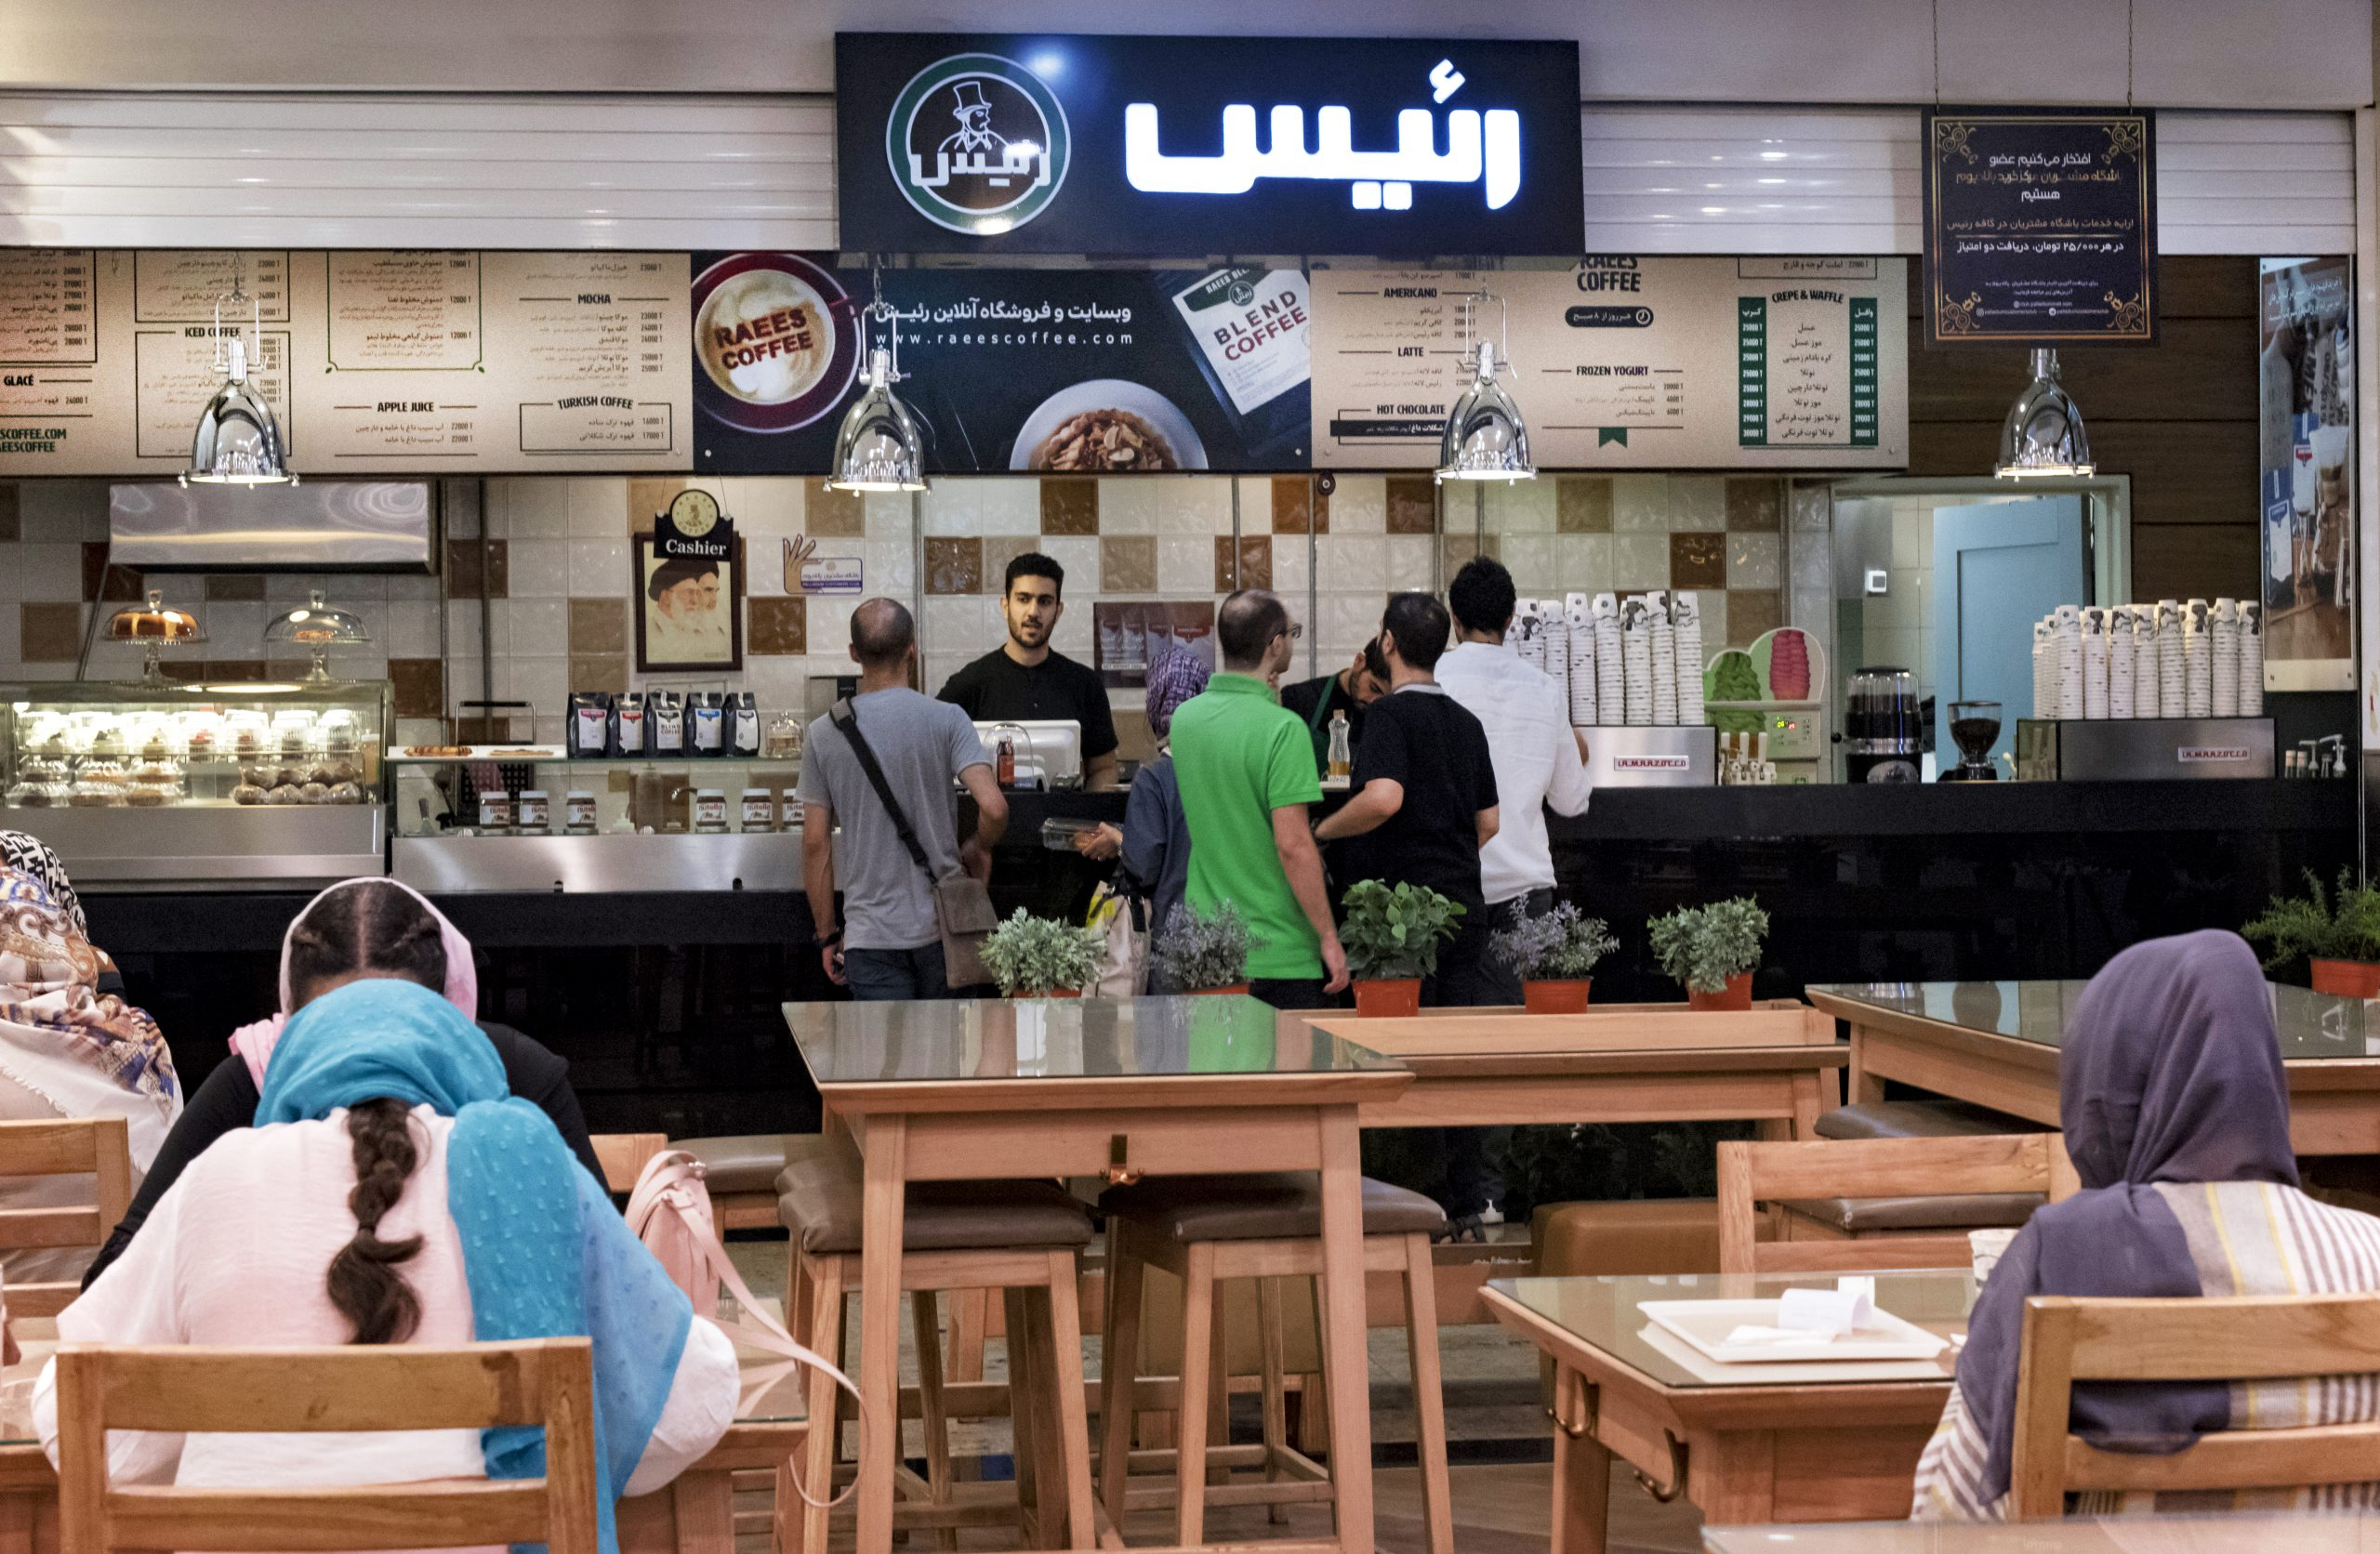 Iran's youth culture revives coffee house tradition